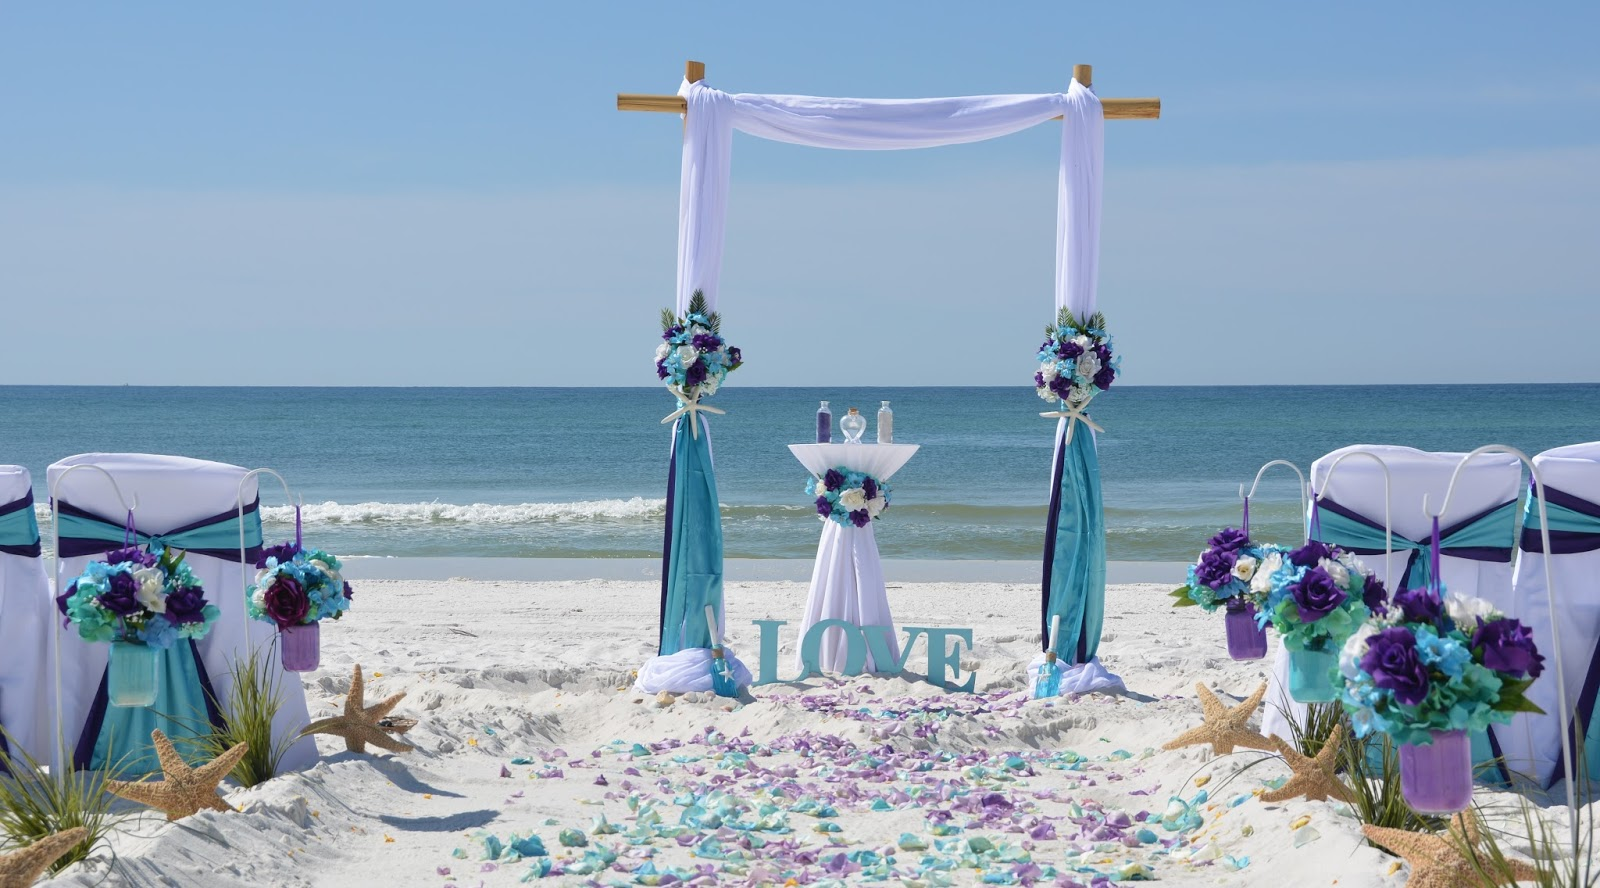 Affordable Florida Barefoot Beach Wedding Packages